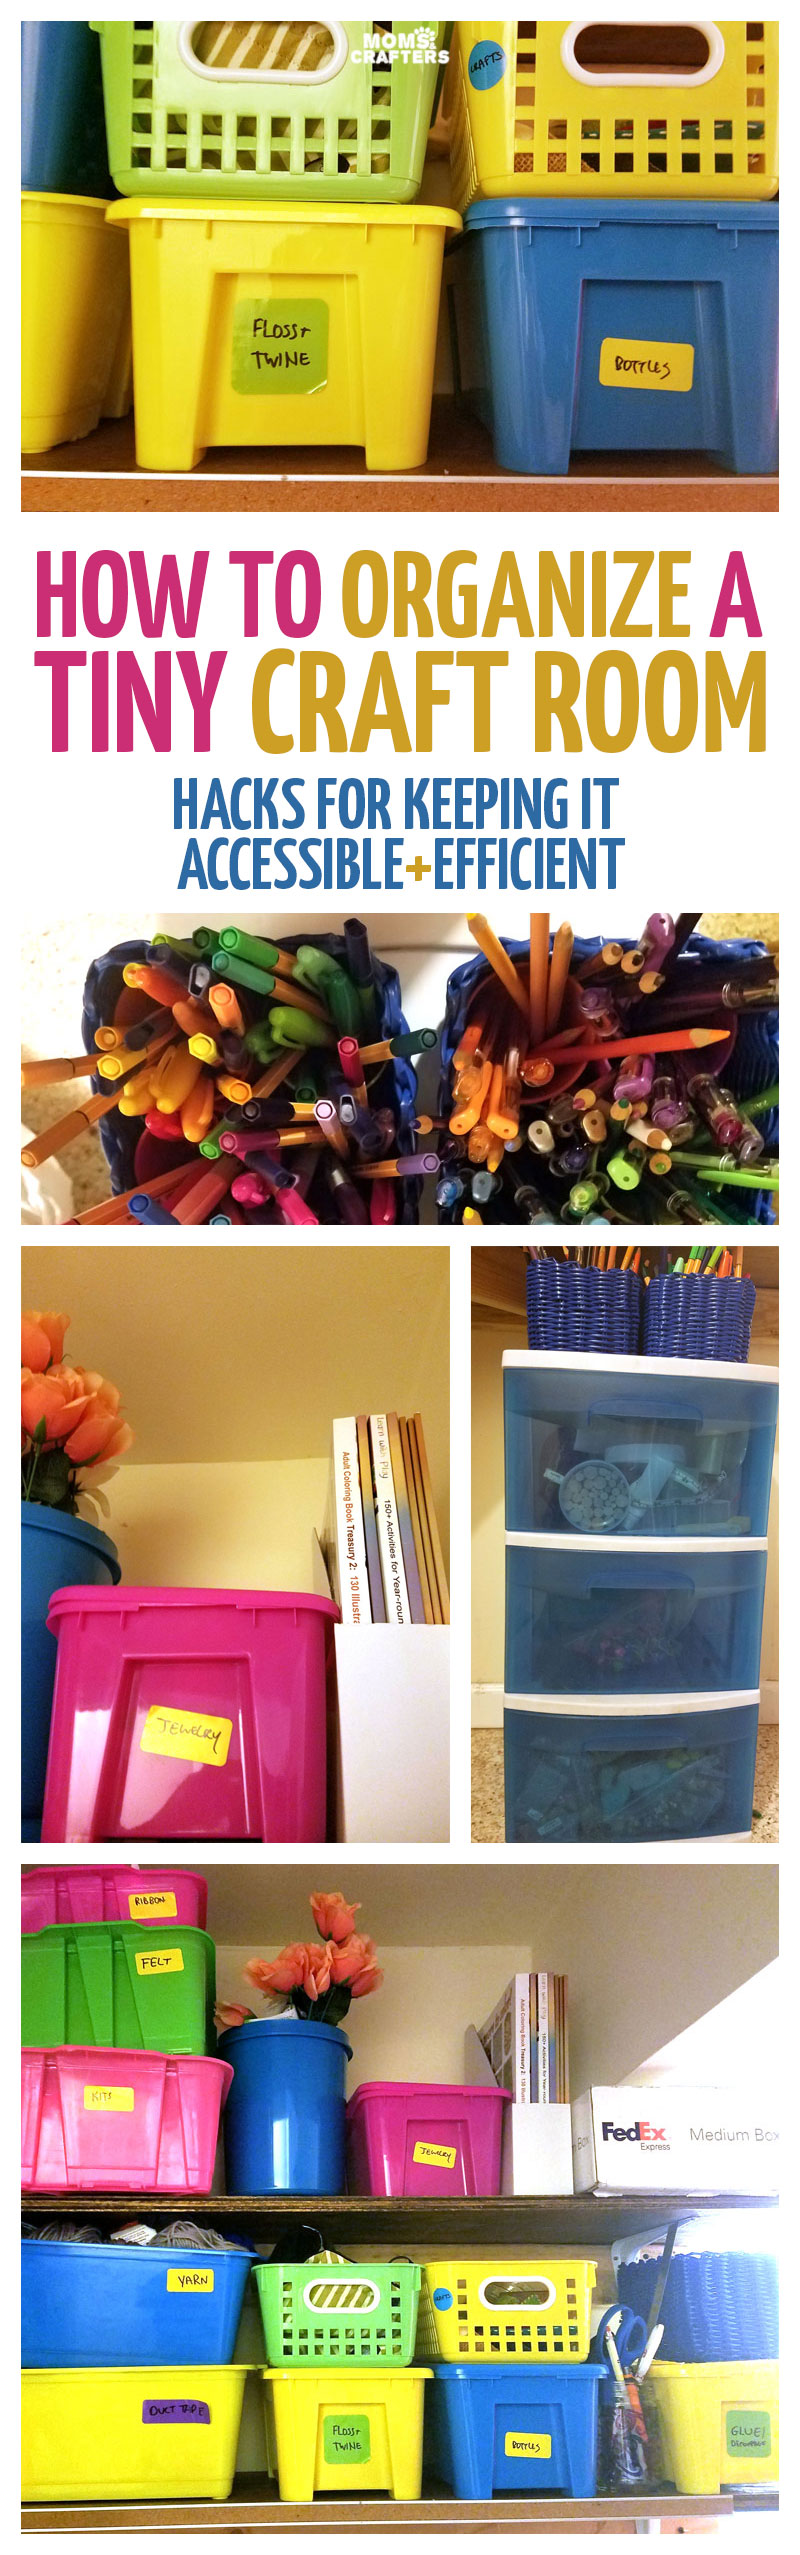 Craft Room Organization How To Organize A Tiny Craft Room Efficiently